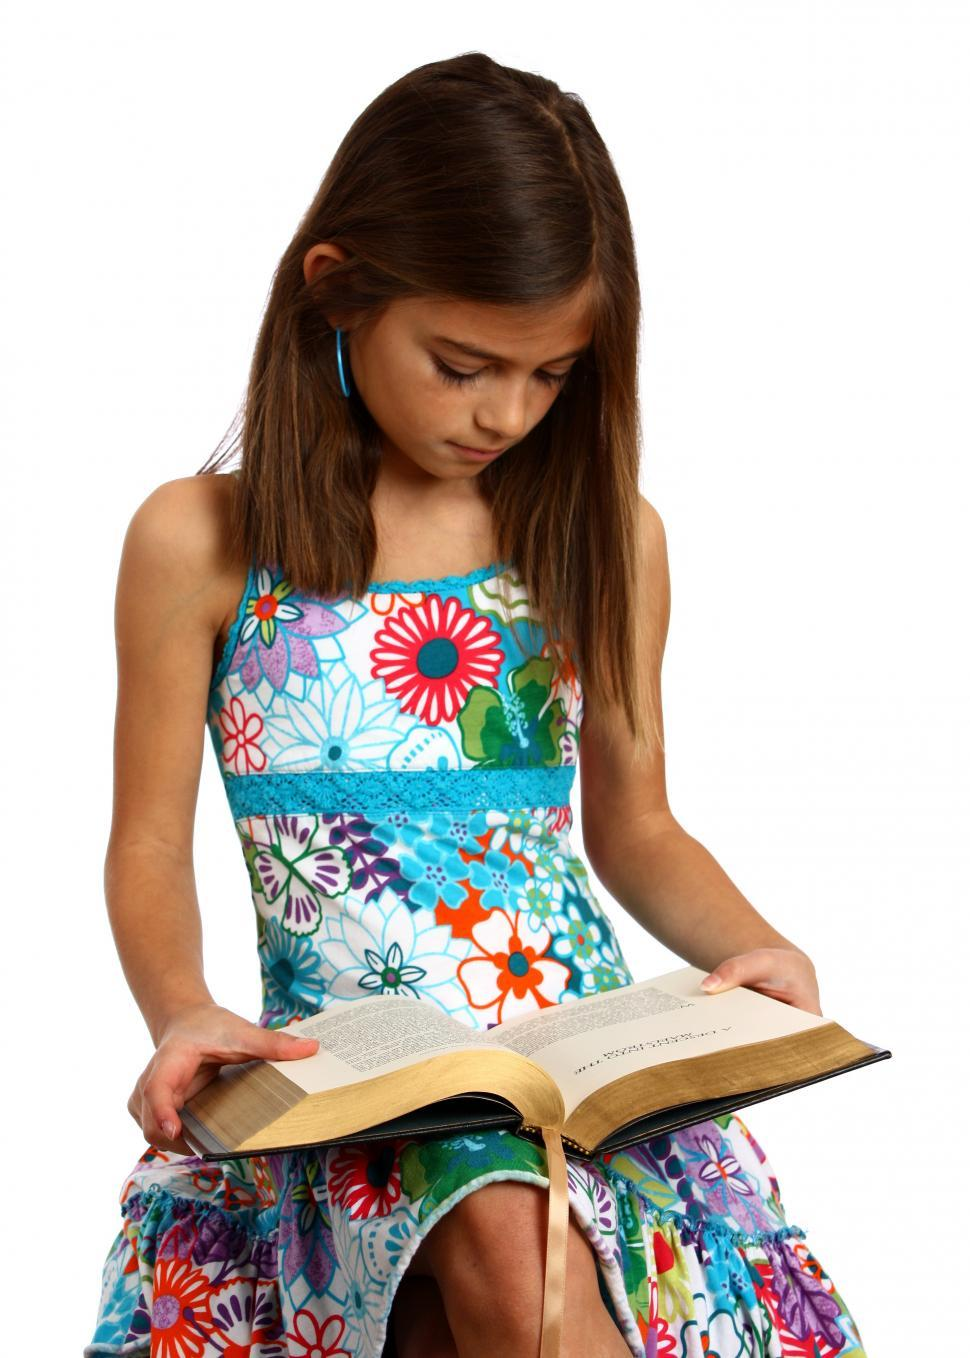 Download Free Stock HD Photo of A pretty young girl reading a book Online